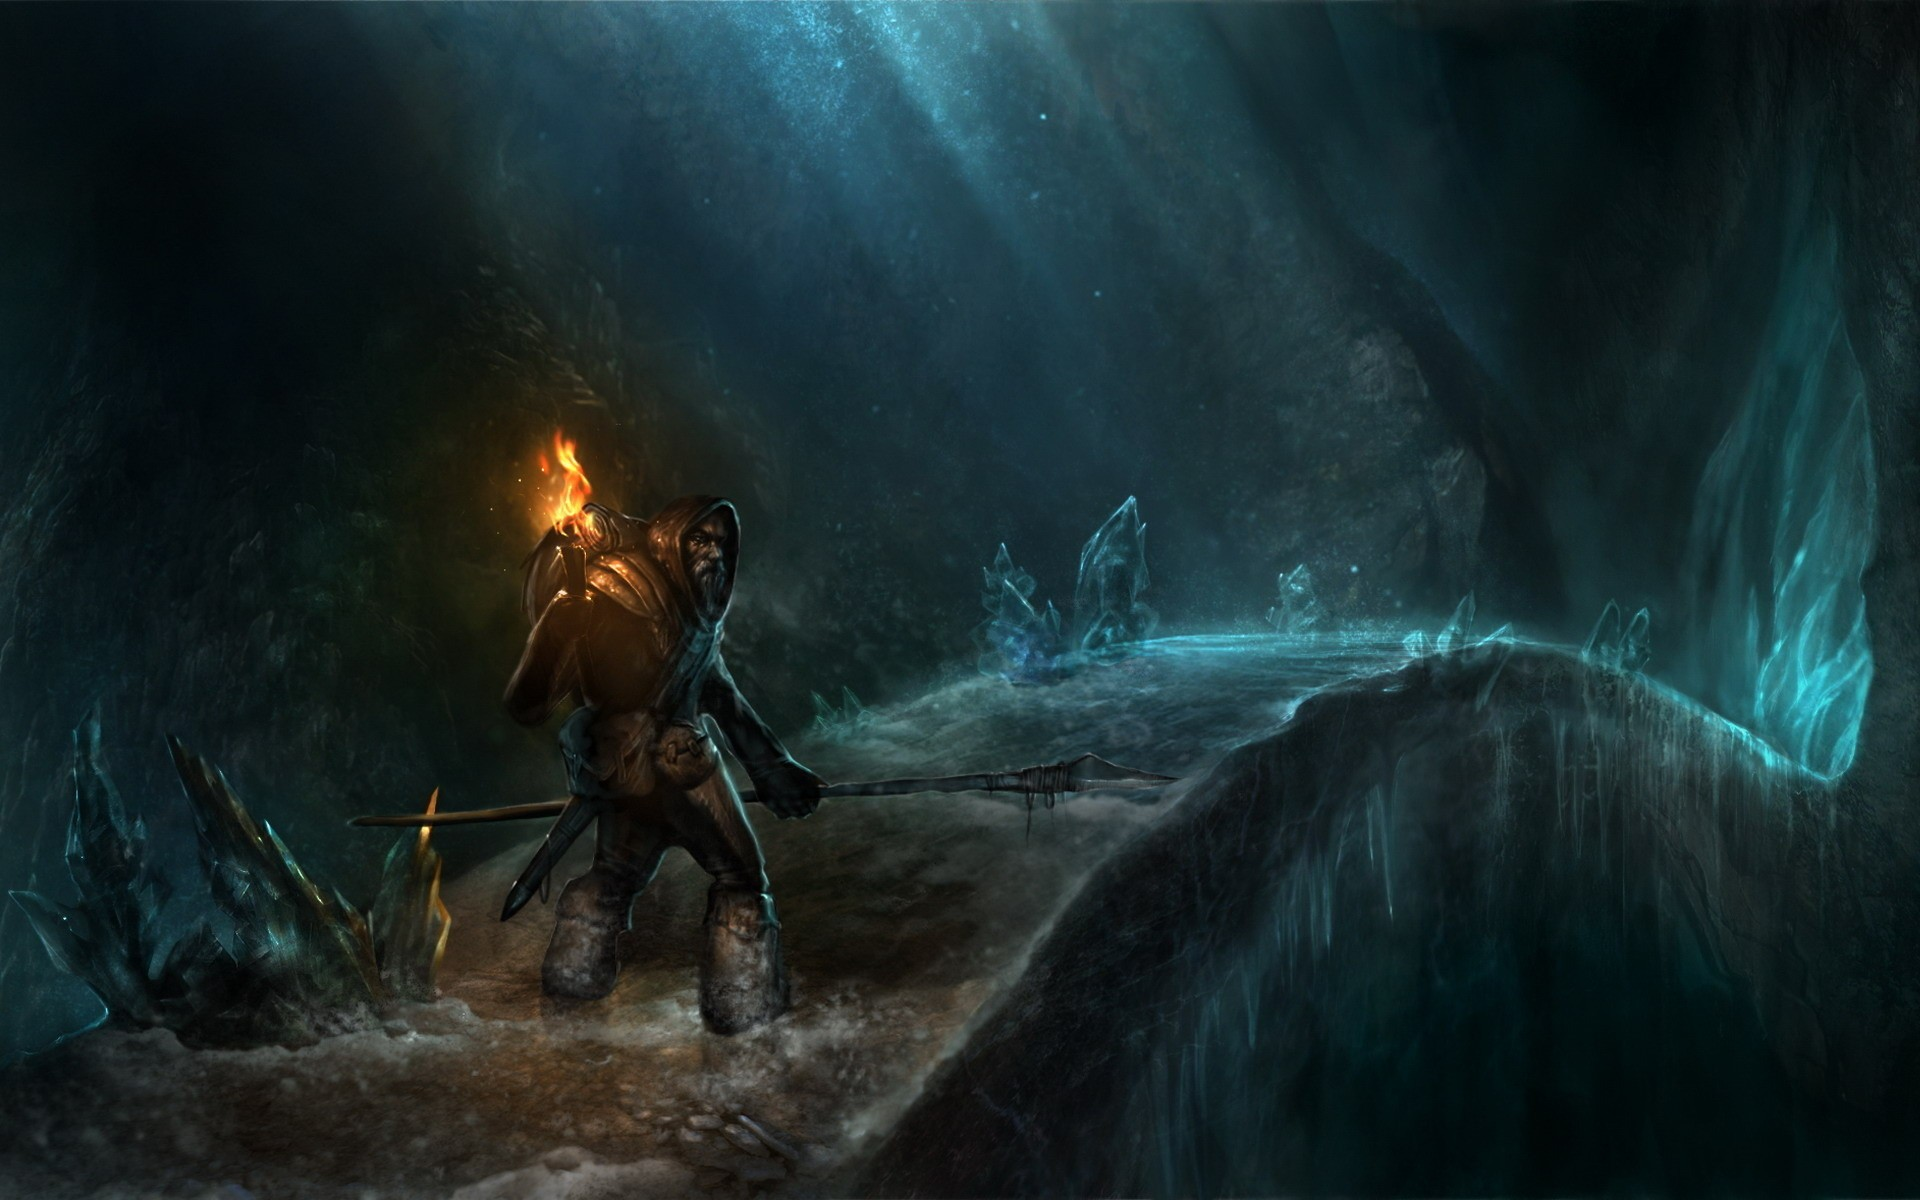 Dwarf in a cave with a torch, the art for the game World of Warcraft